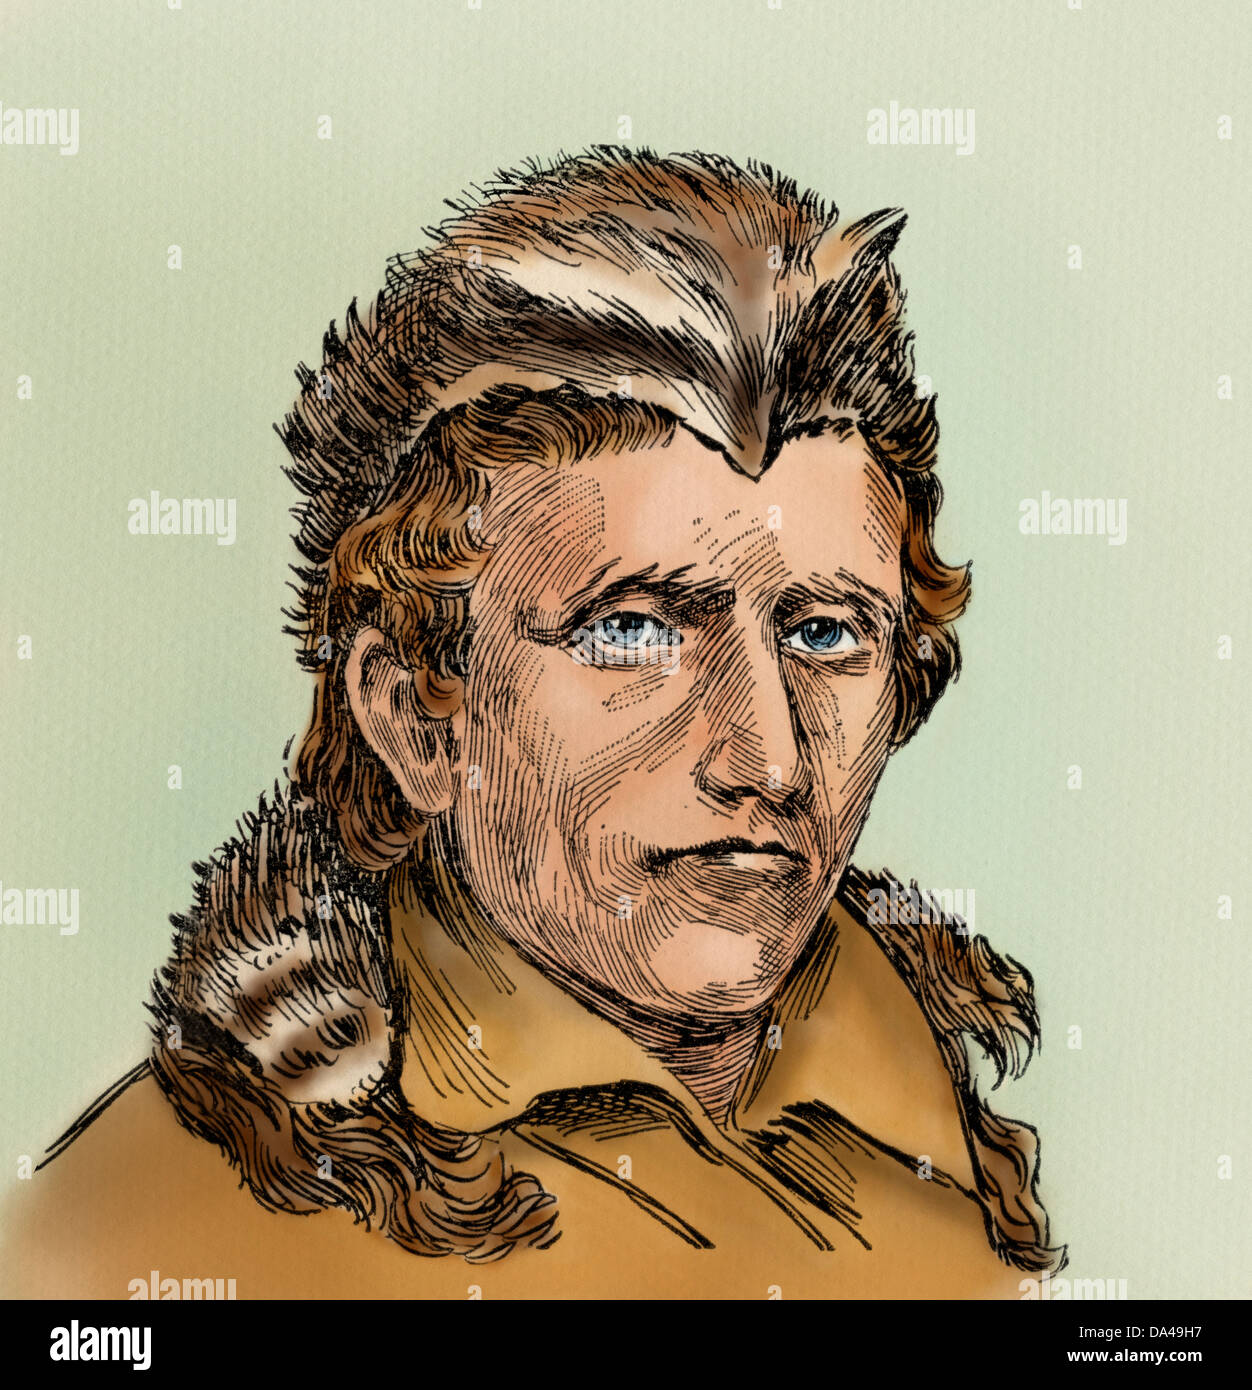 ce7be7bf Daniel Boone in a coonskin cap. Digitally colored woodcut - Stock Image